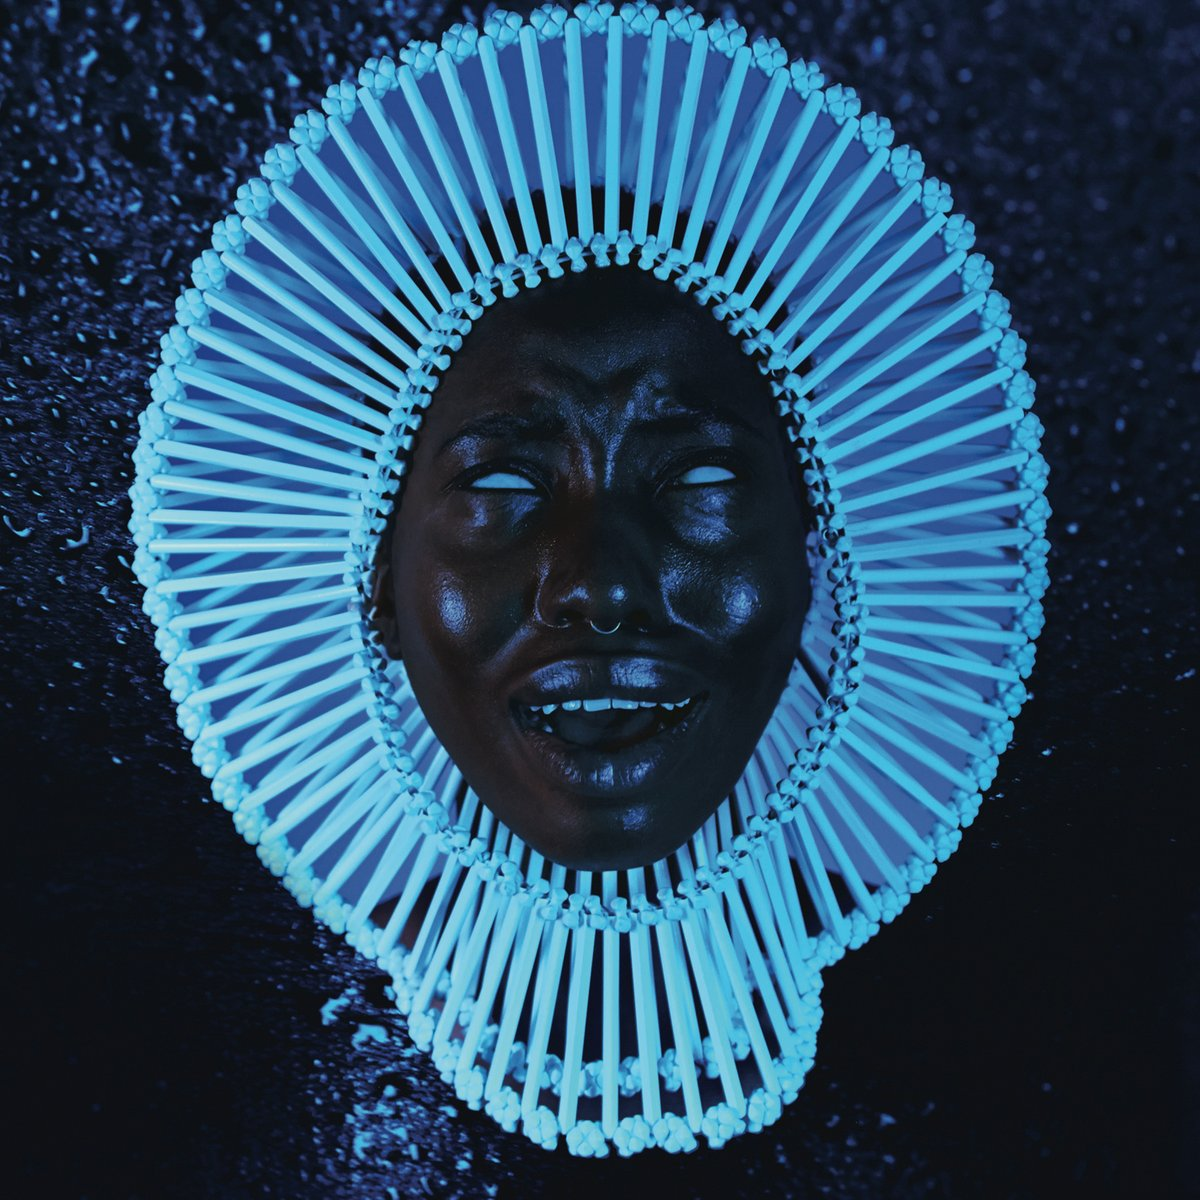 """Childish Gambino Releases New Single, """"Me and Your Mama"""""""